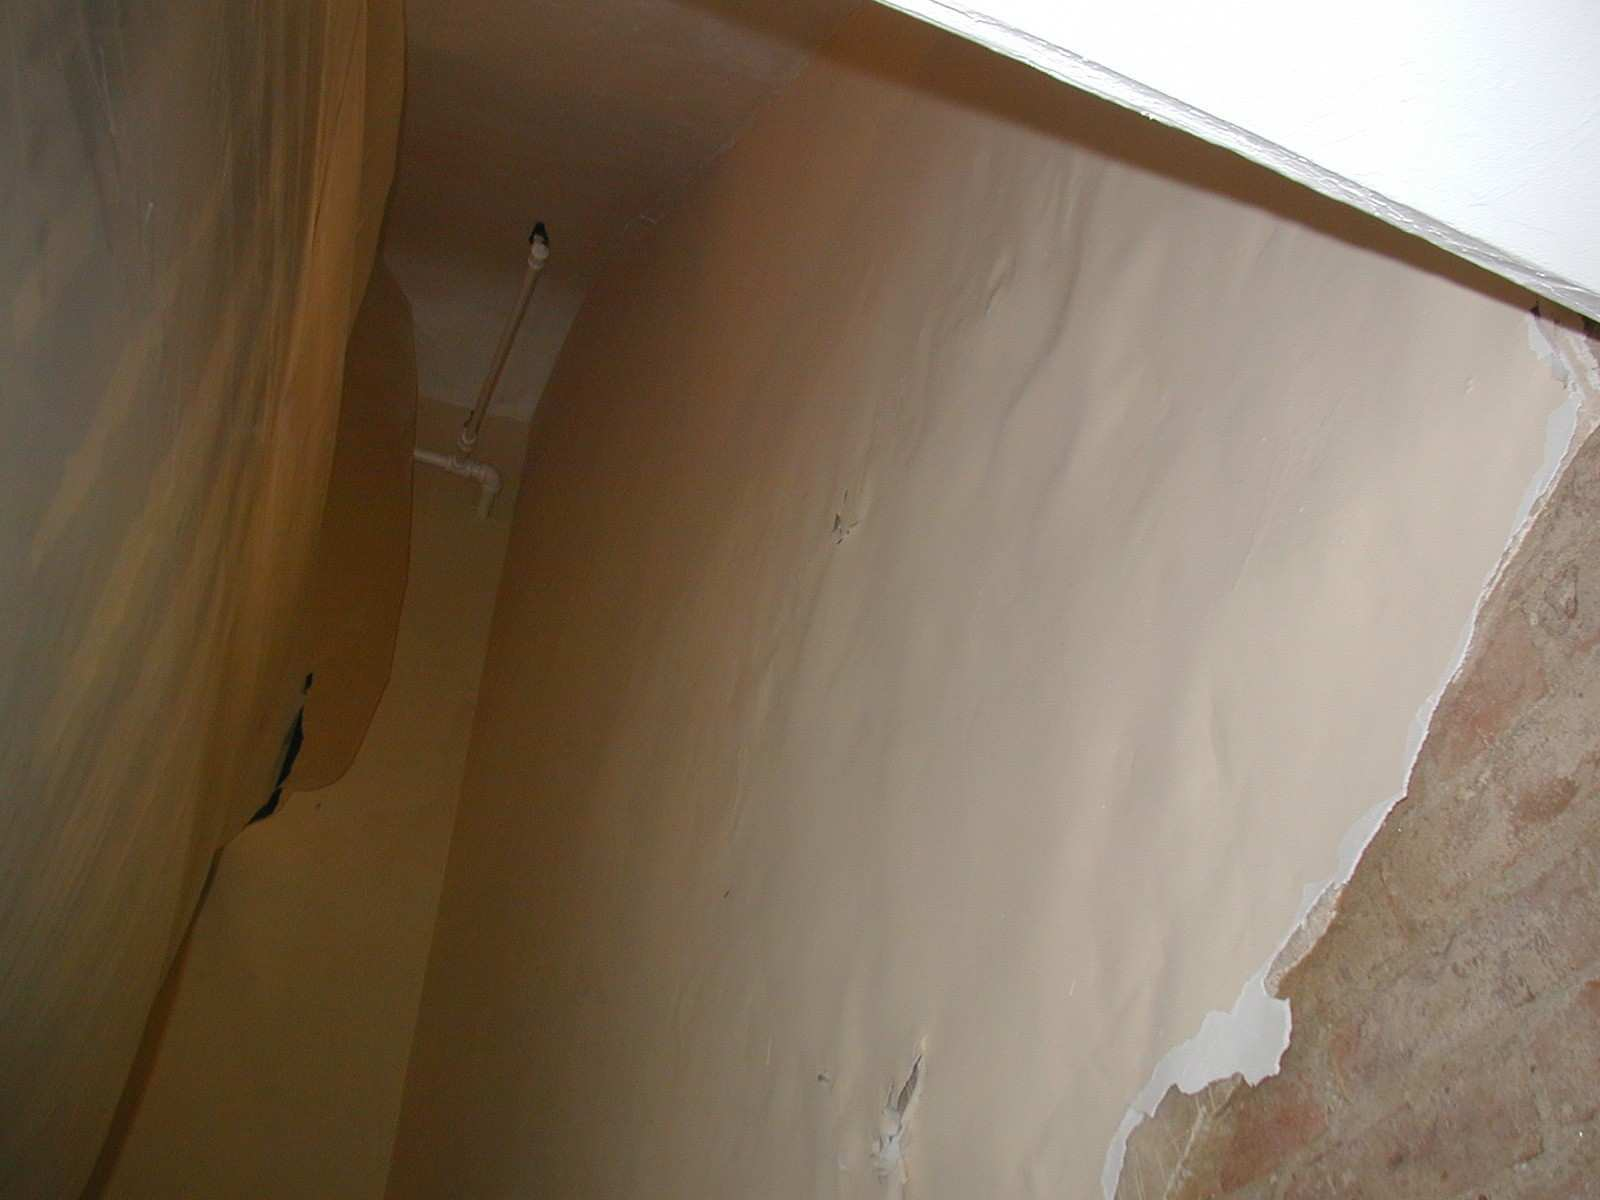 Leaky Brick Walls Paint Bubbling Quick Cheap Solution Expose the